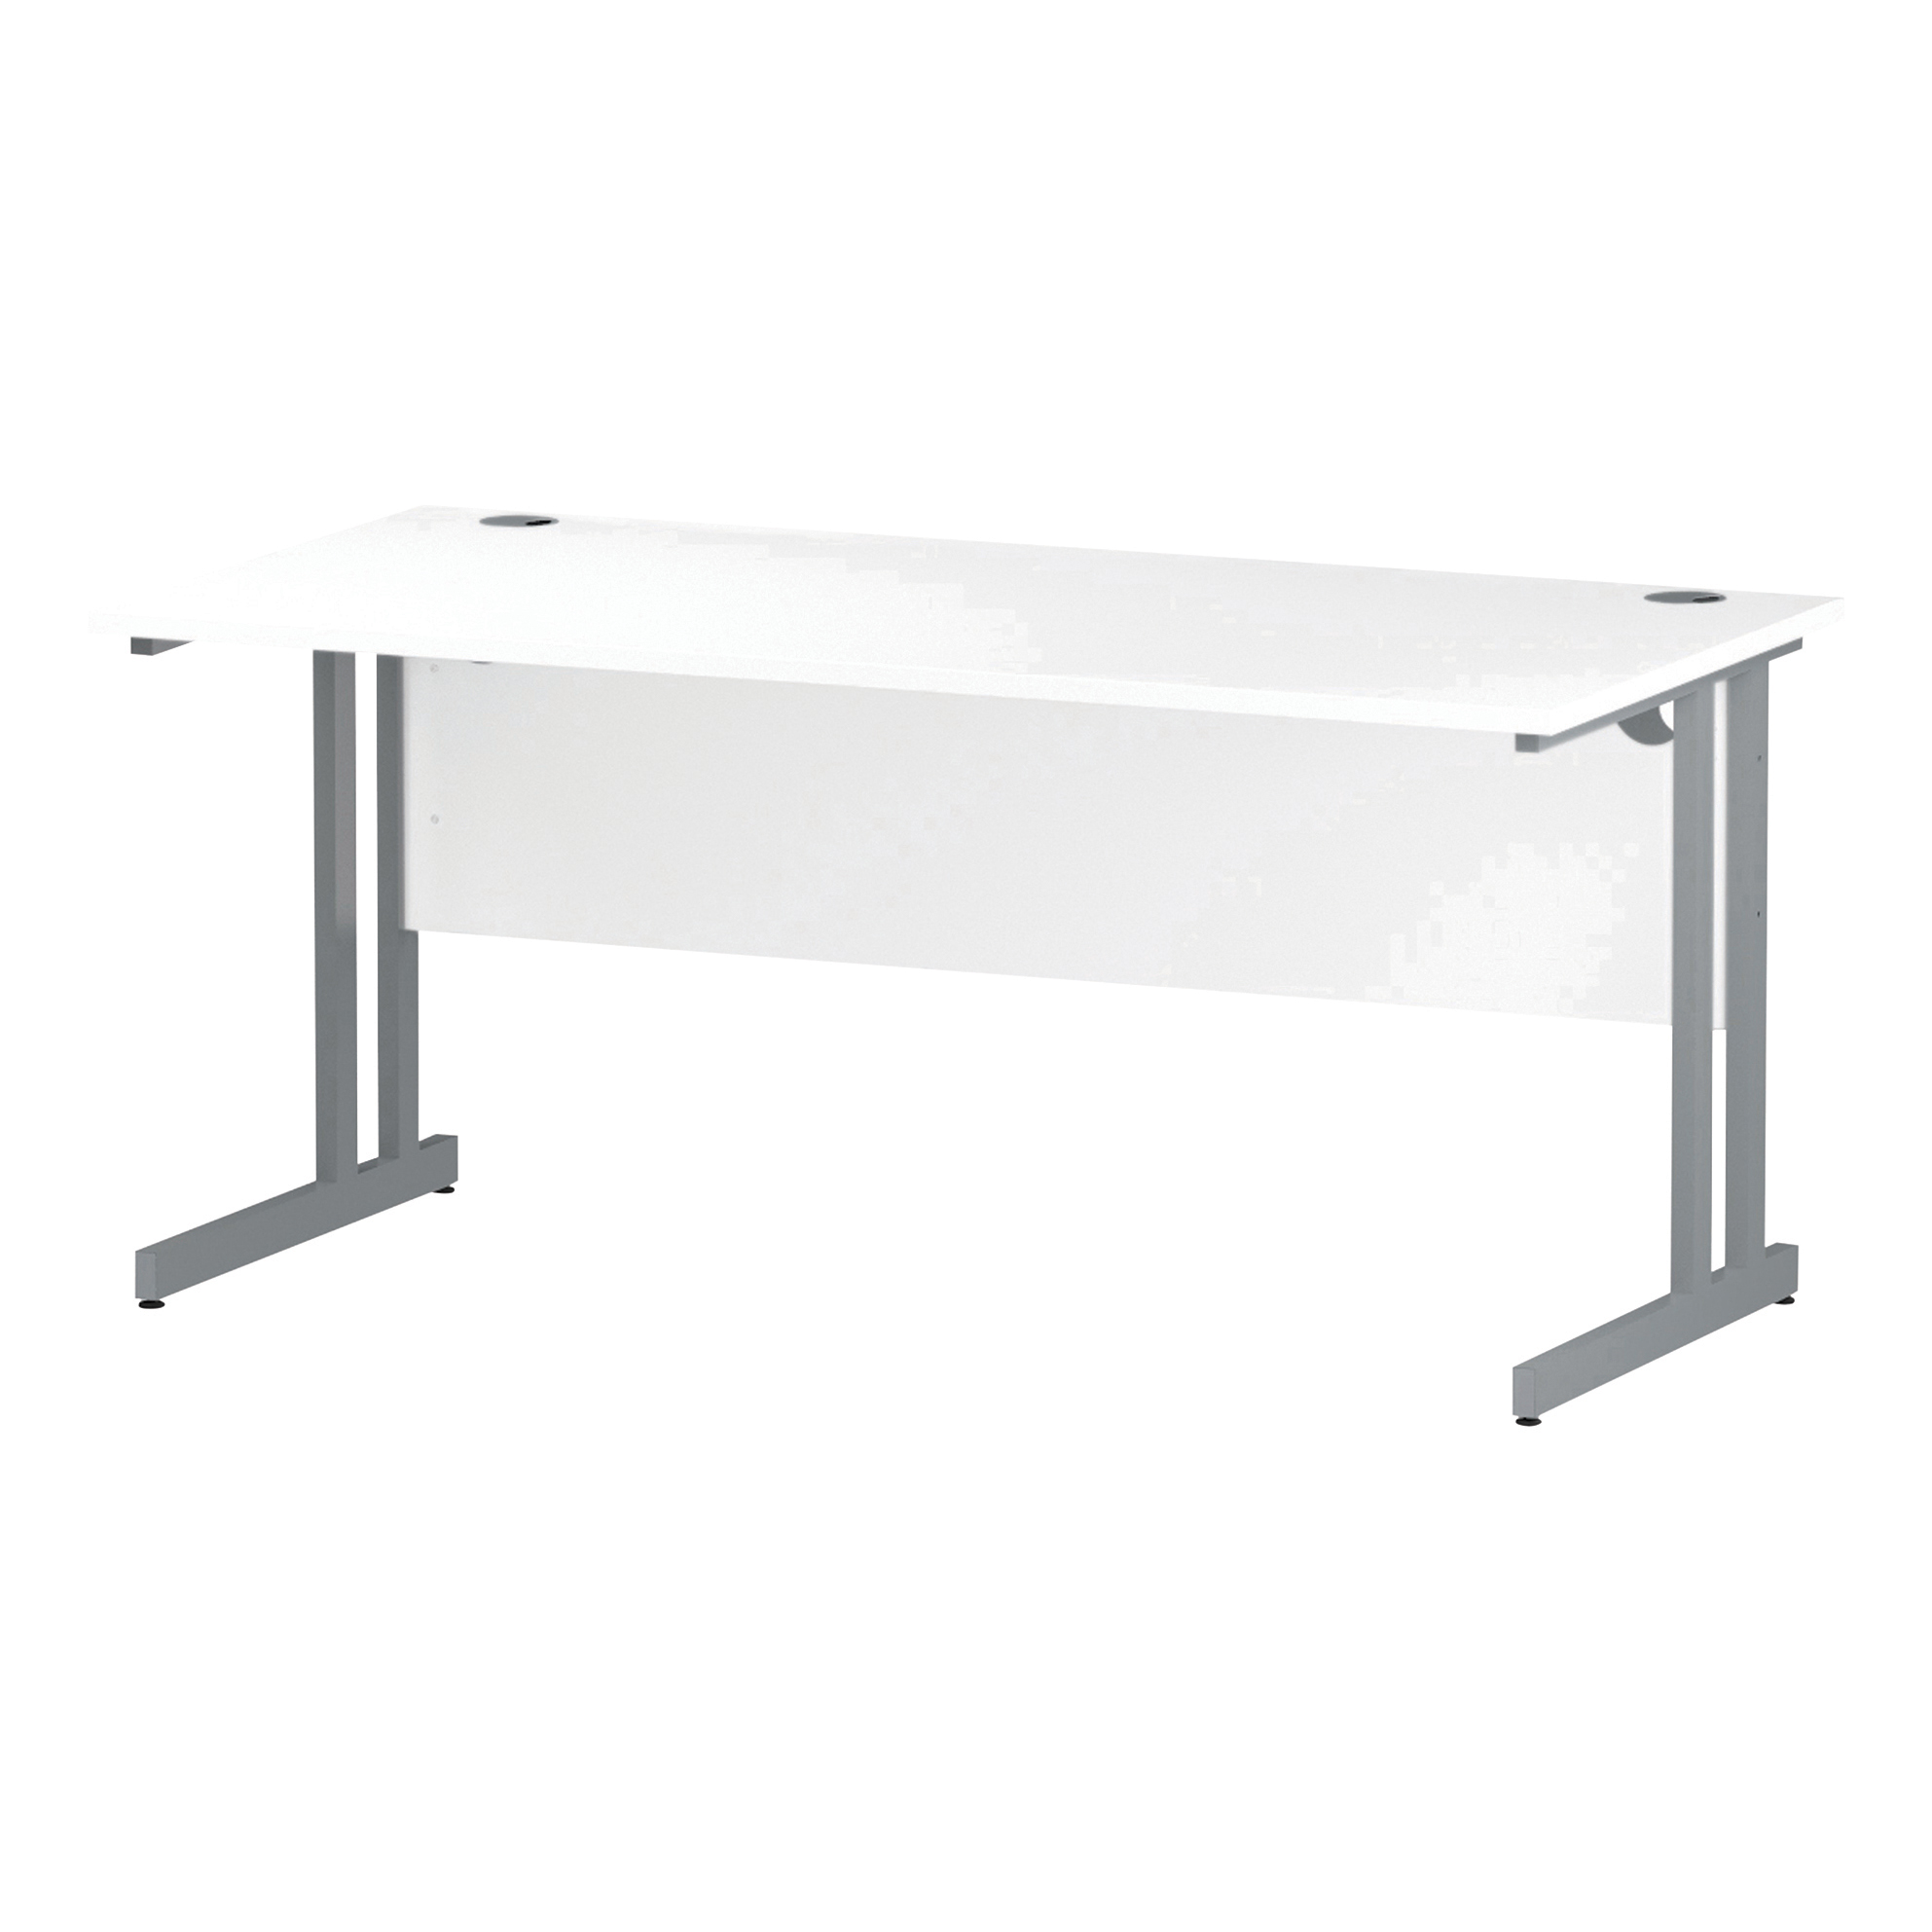 Trexus Rectangular Desk Cantilever Leg 1600mm White